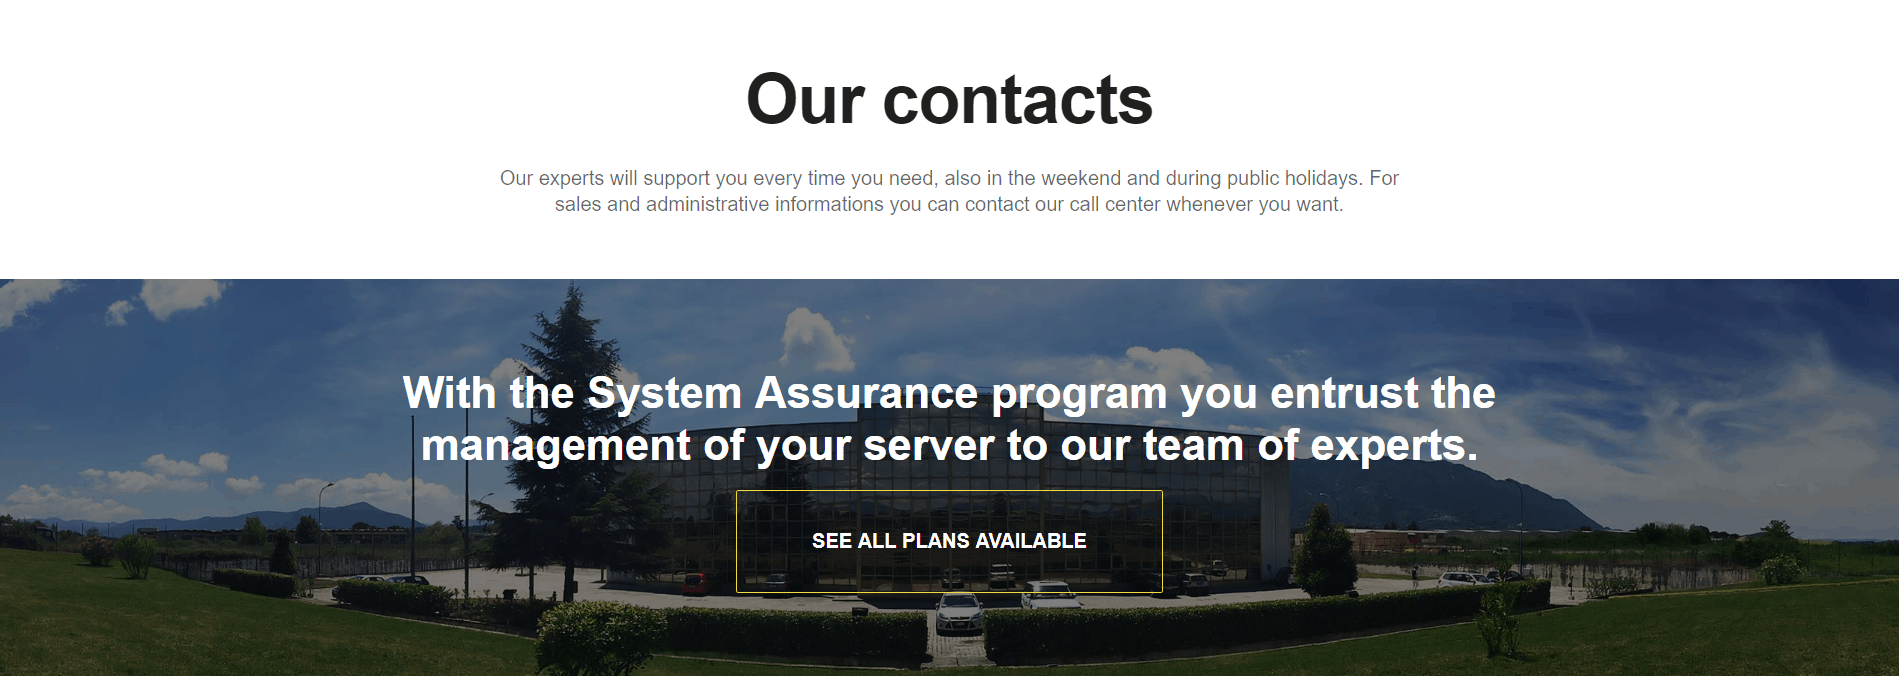 Seeweb-support